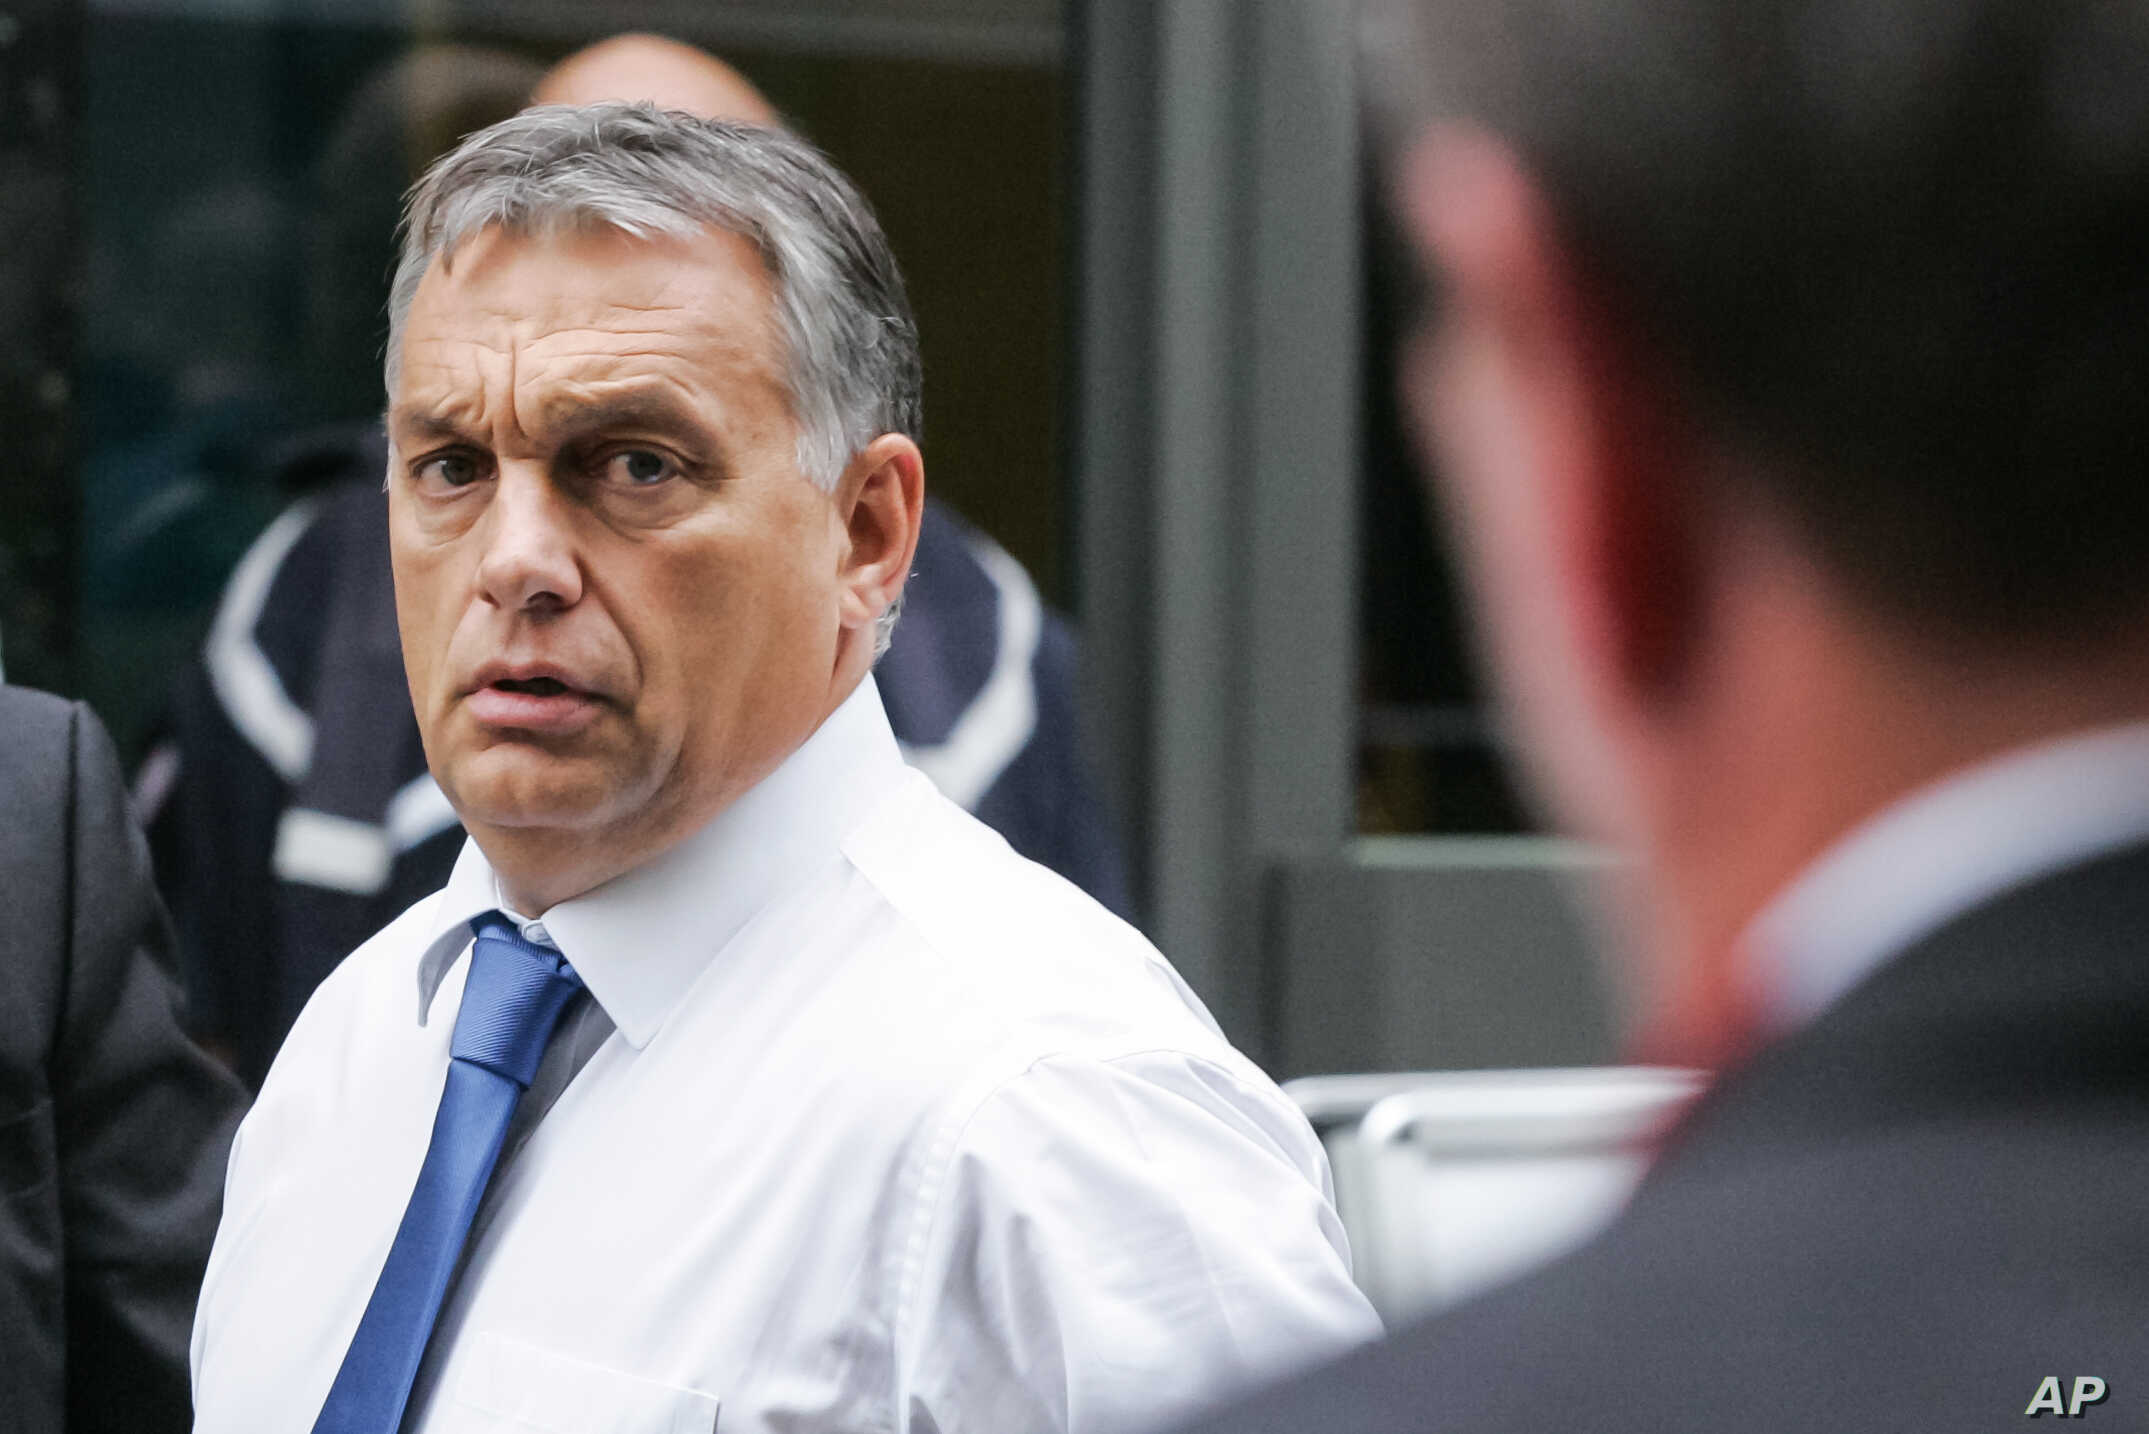 Hungarian Prime Minister Viktor Orban, right, arrives for a European Peoples  Party,  EPP meeting, ahead of an emergency EU heads of state summit on migration, in Brussels on Sept. 23, 2015.